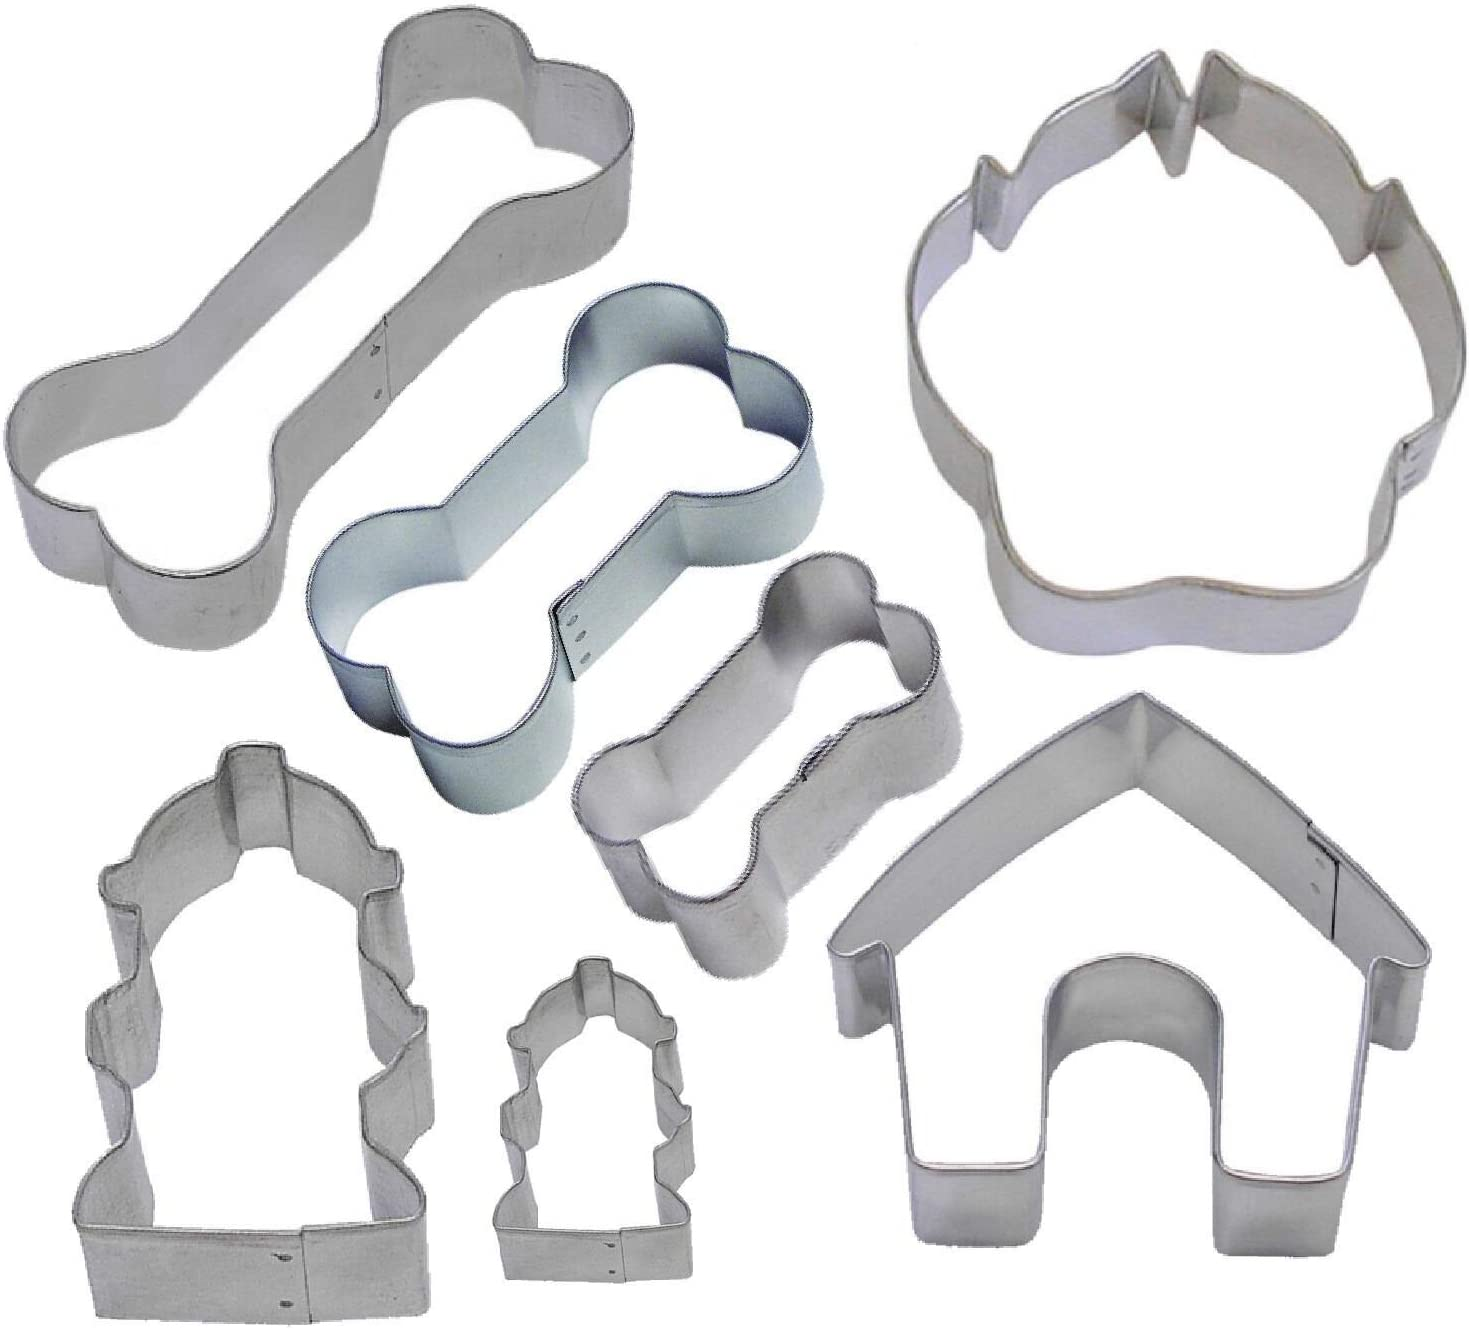 7 Piece Dog Lover Oklahoma Large-scale sale City Mall Cookie Cutter MichaelBazak - Variety Set Store